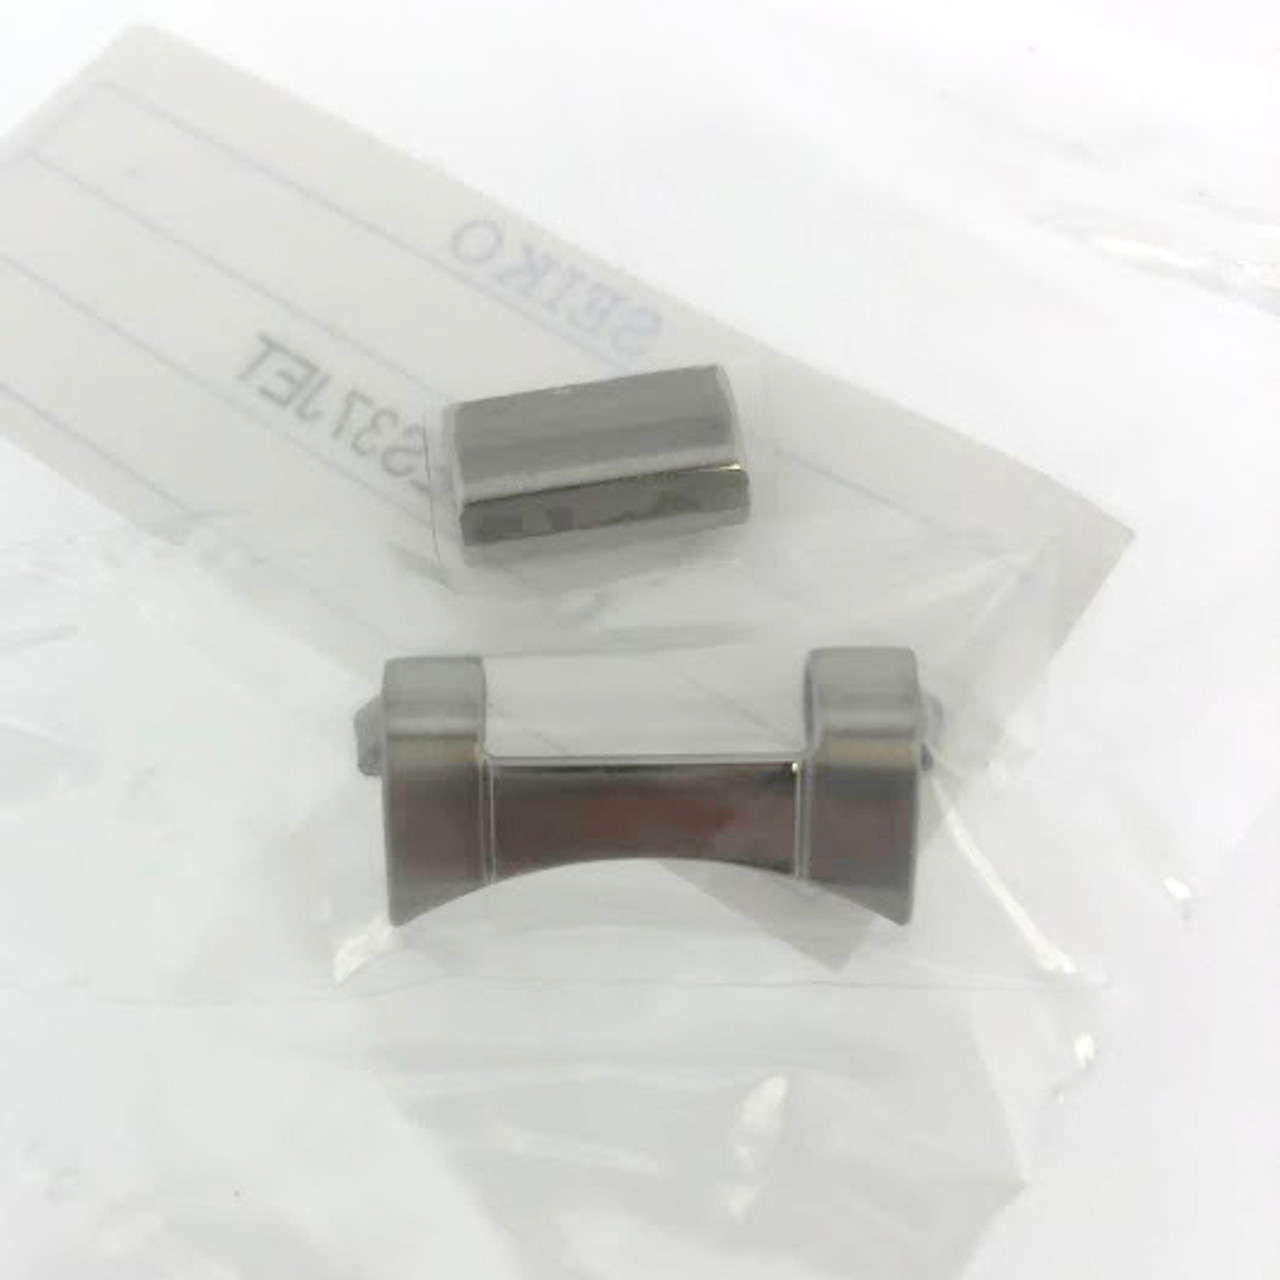 SEIKO SSC017 band end link